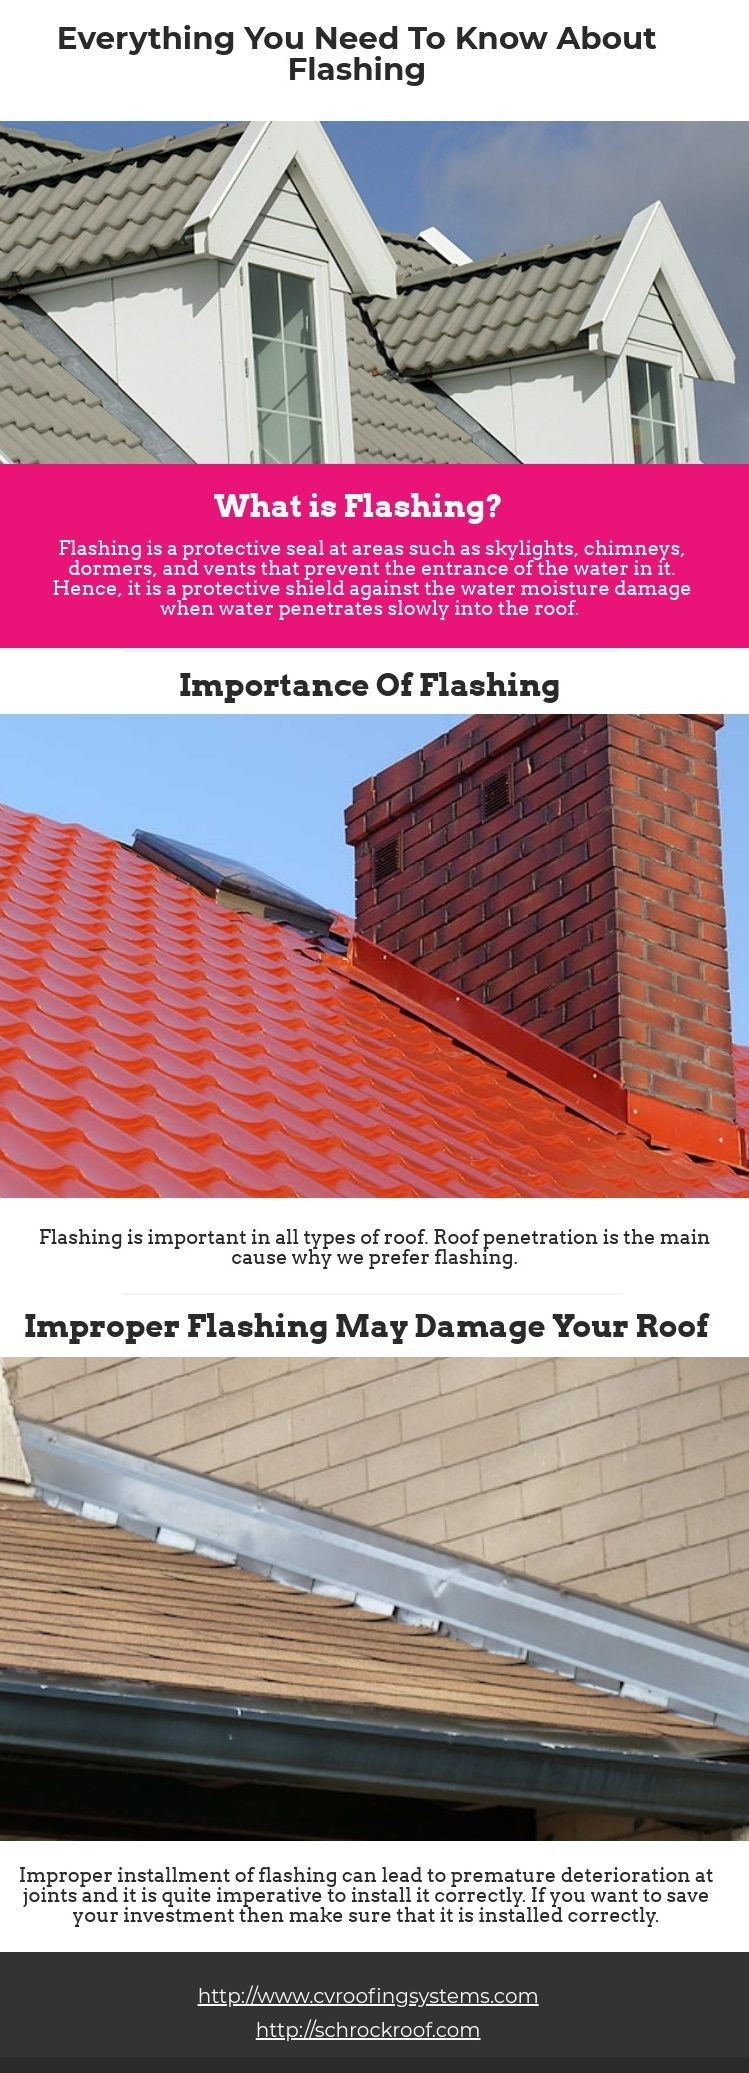 There are different kinds of roof flashing you need to